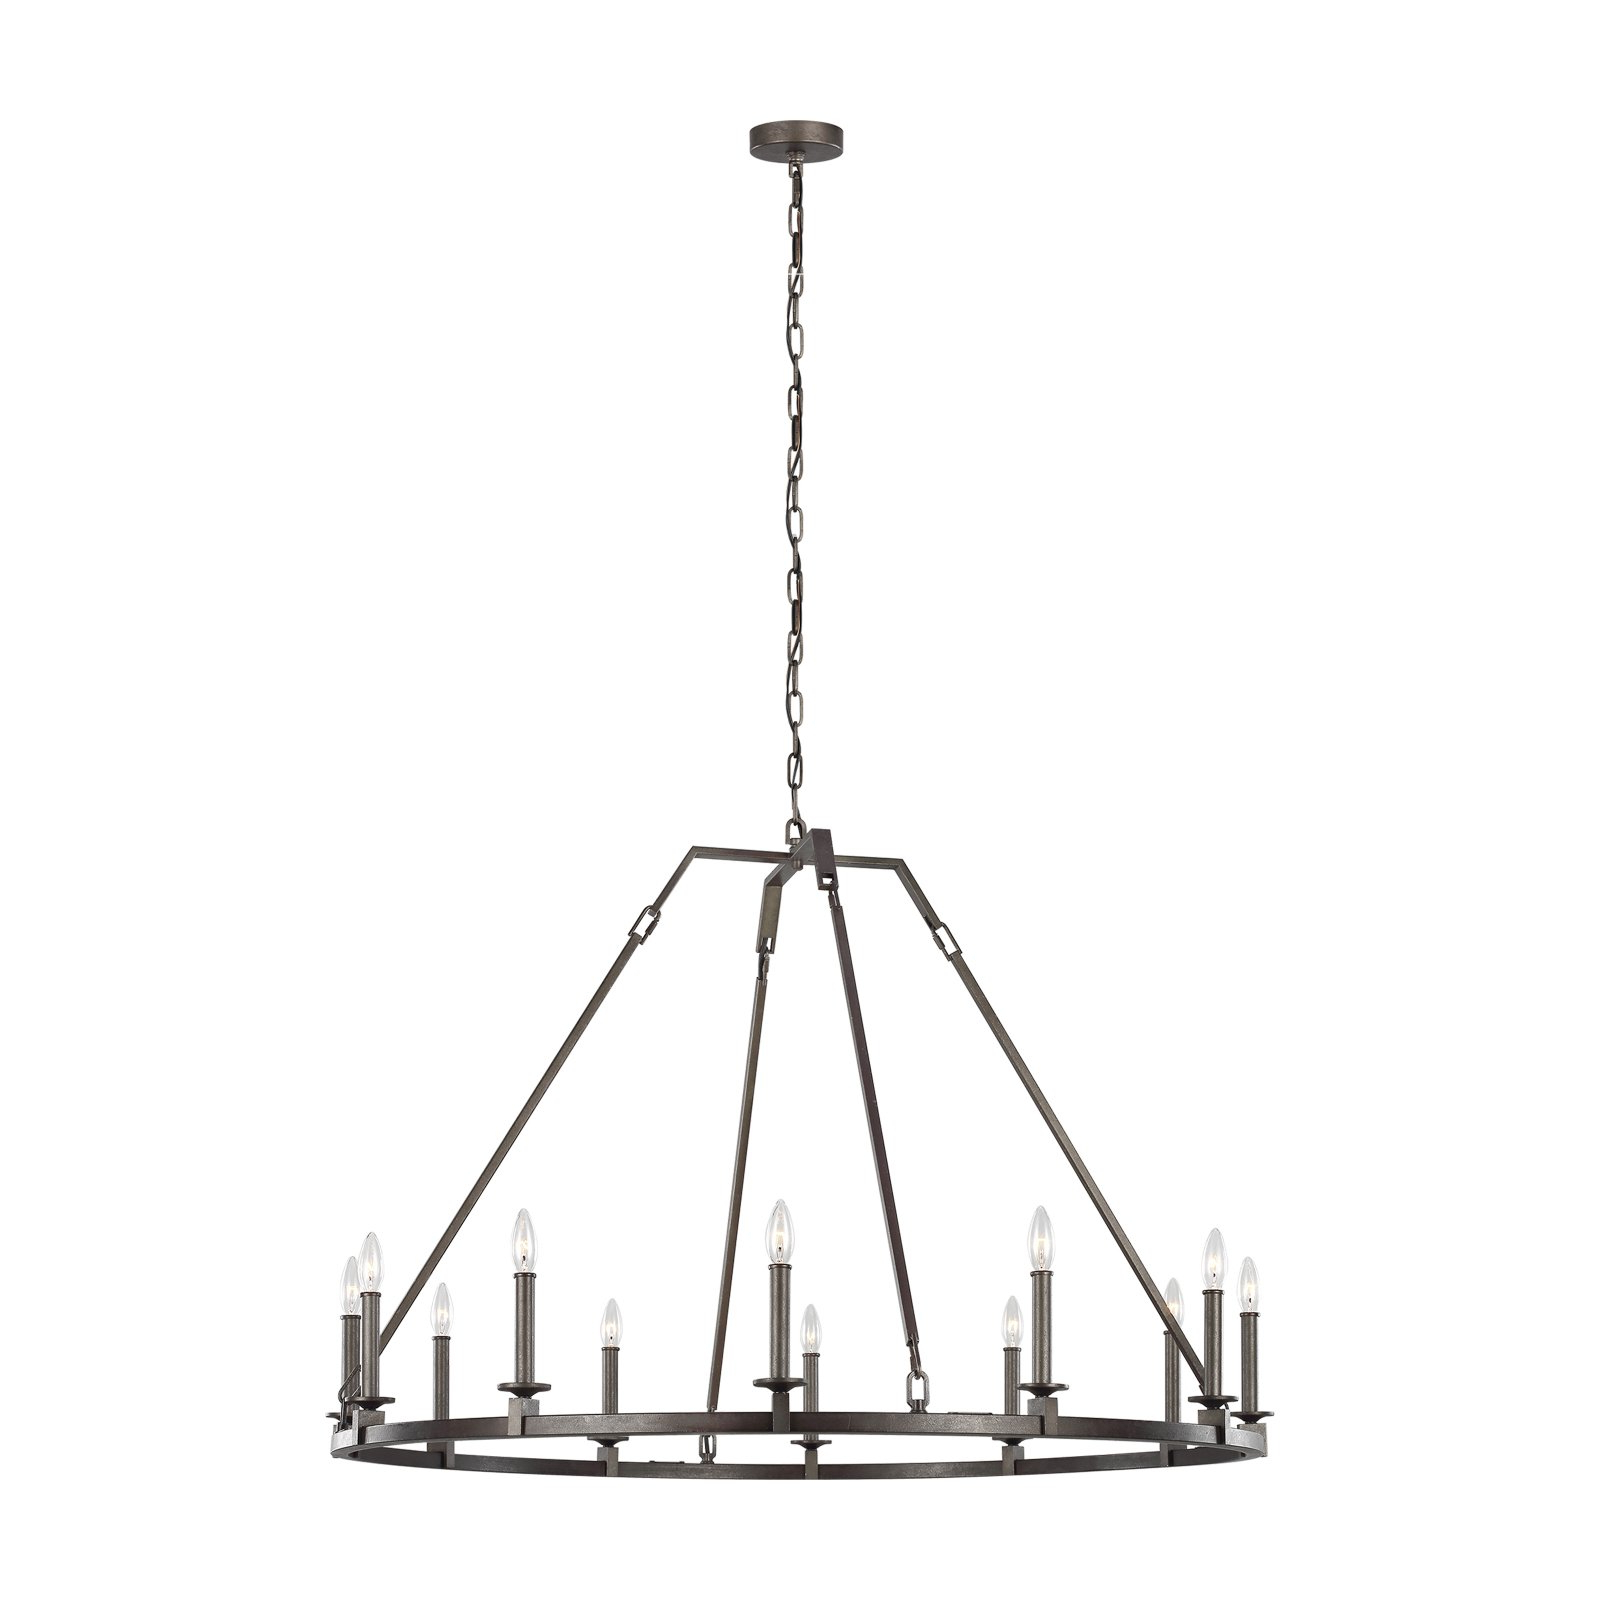 Shayla 12 Light Wagon Wheel Chandeliers With Latest Feiss Landen F3216/12Sms Chandelier (View 10 of 25)